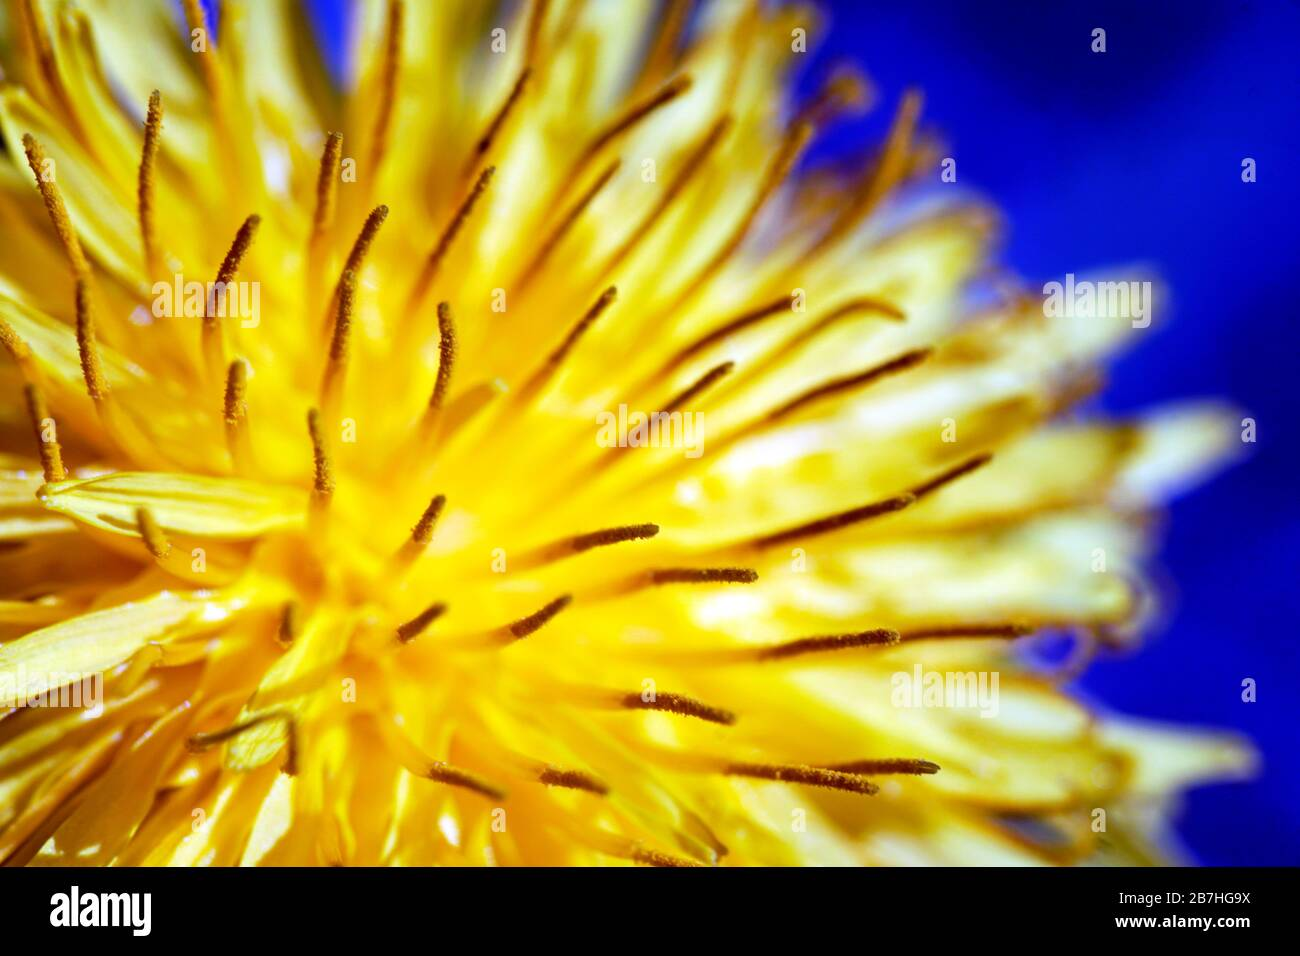 Yellow dandelion close up on the blue background. Spring 2020. Close up handheld macro-photography. Stock Photo